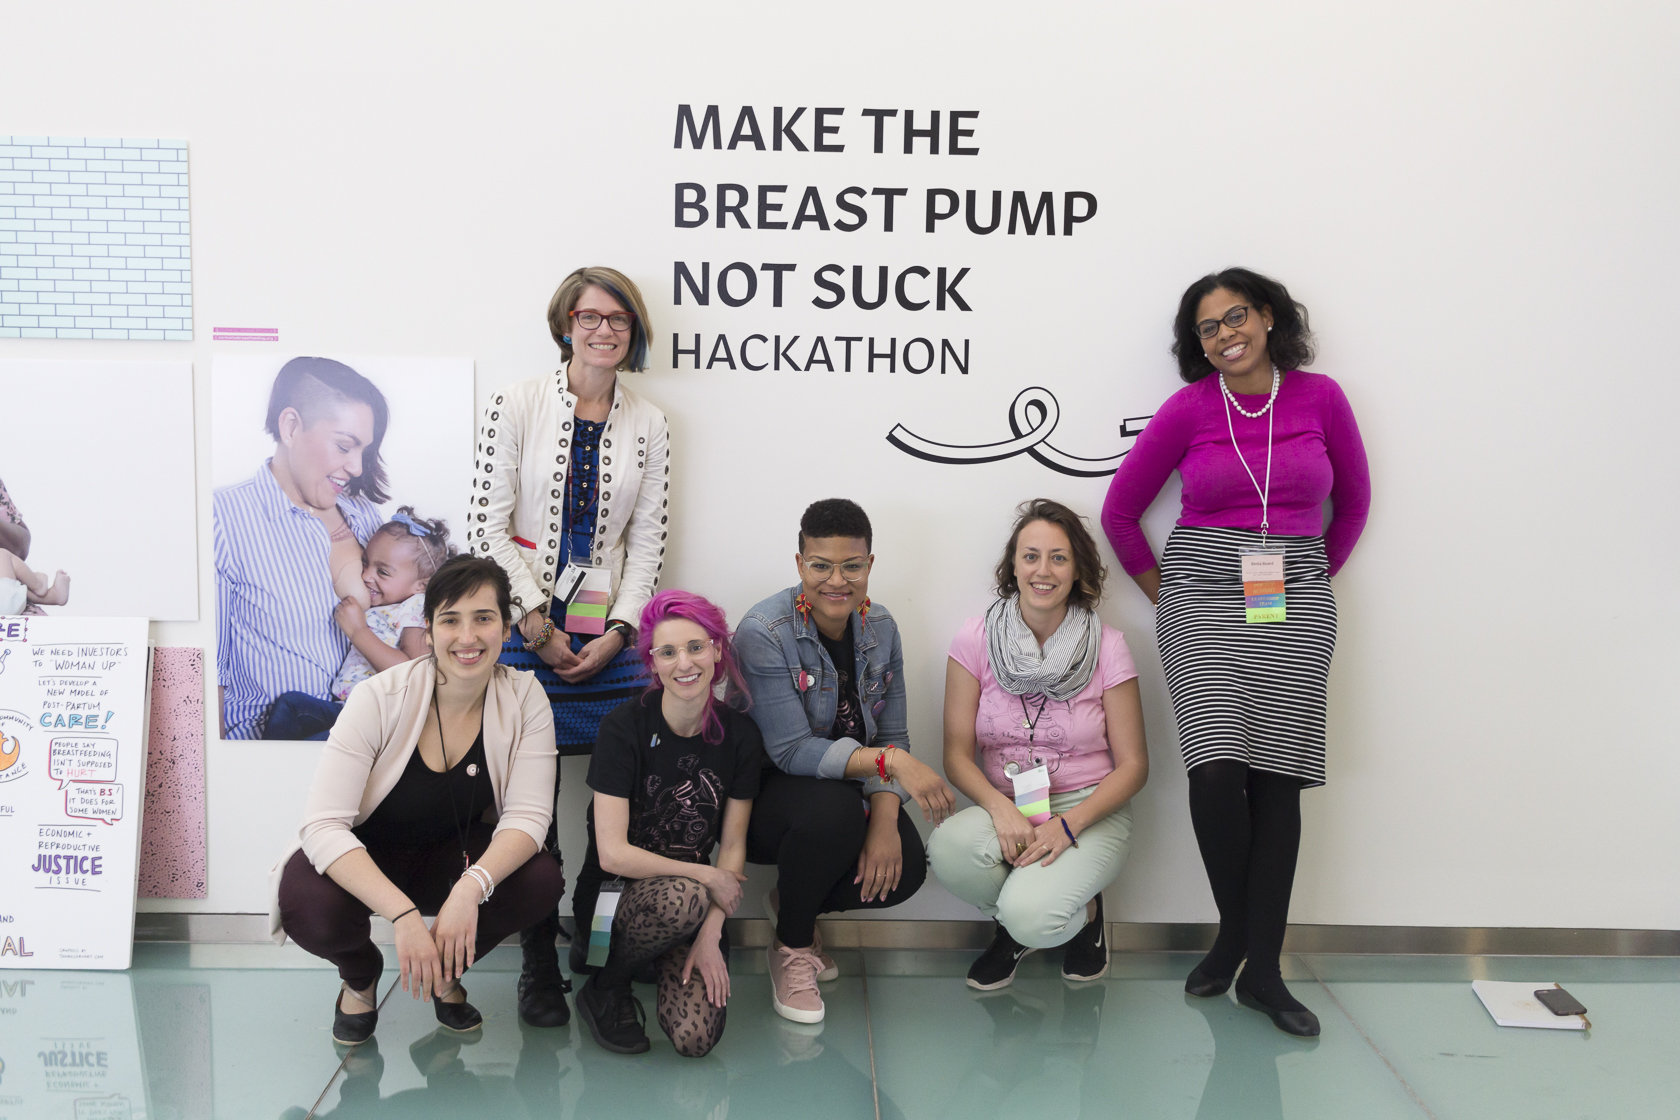 Image for 'Make the Breast Pump Not Suck Hackathon' event